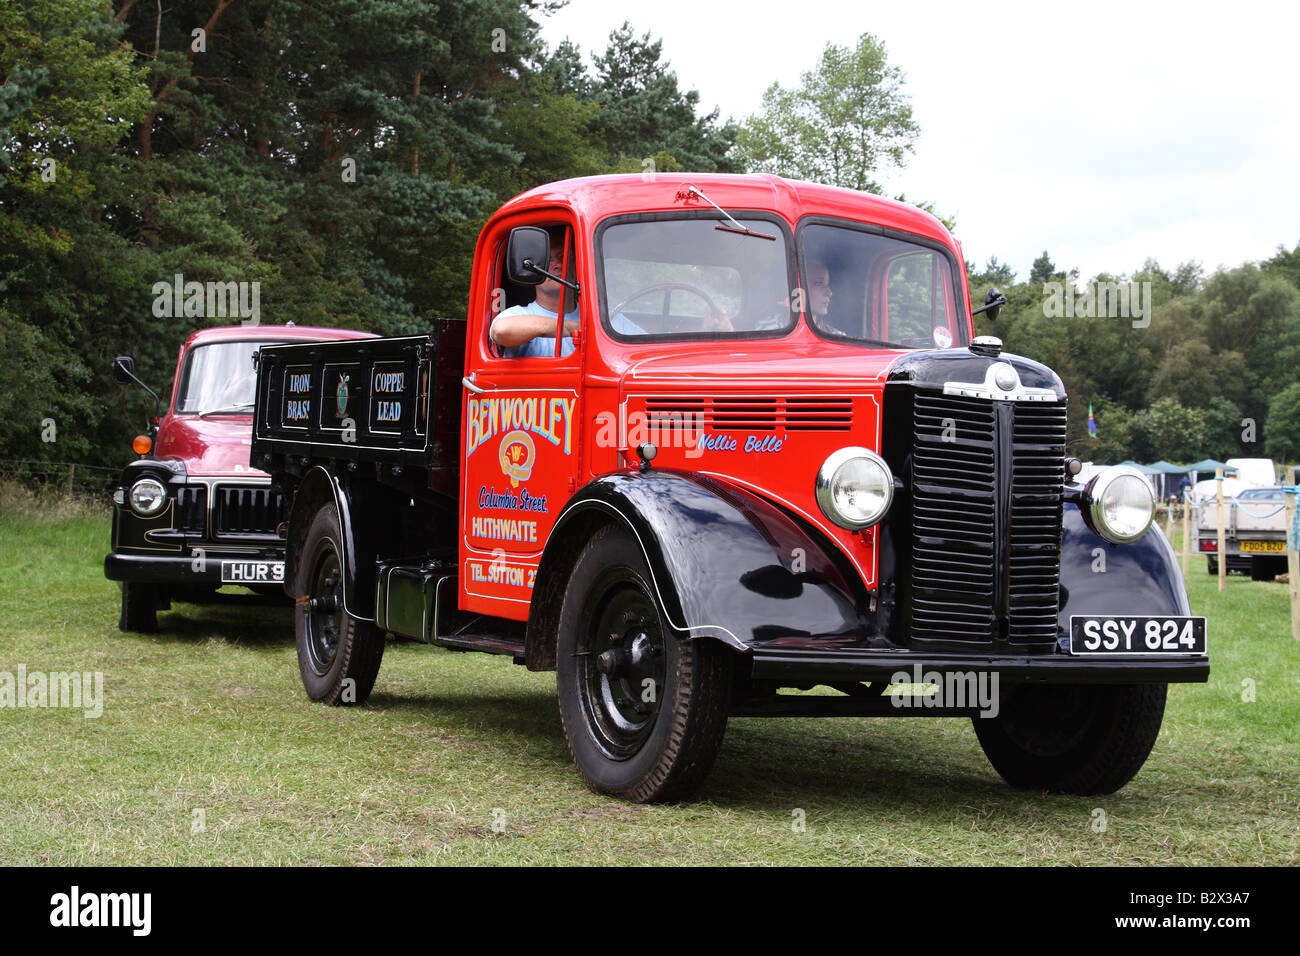 A vintage Bedford lorry at the Cromford Steam Engine Rally 2008 - Stock Image